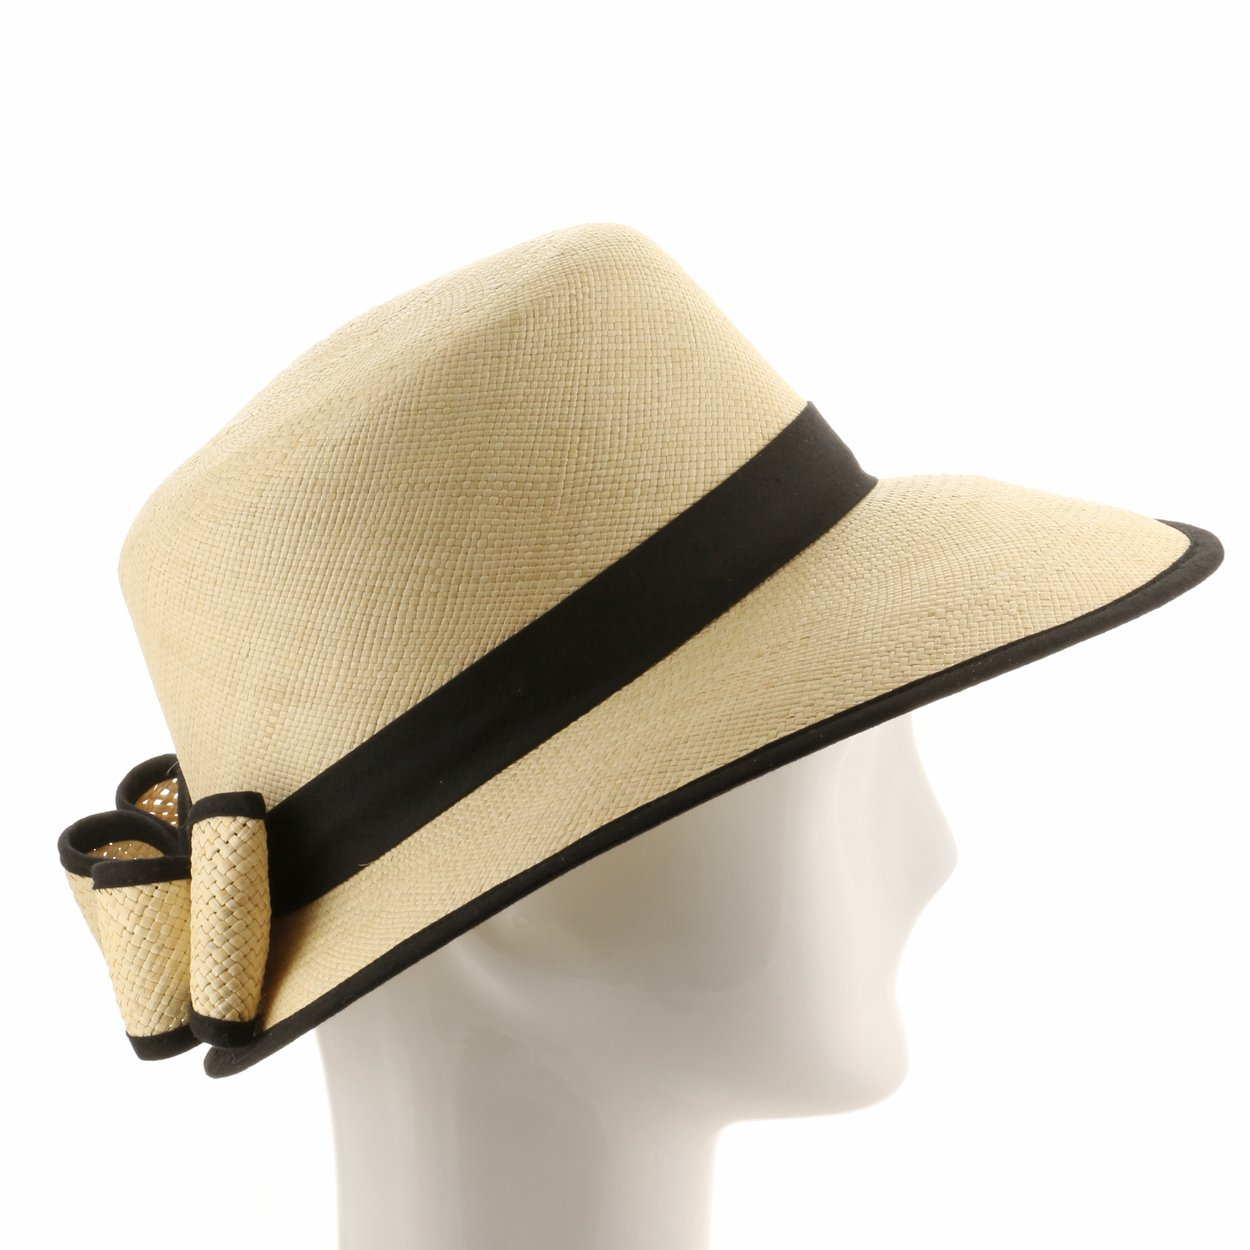 1920s Accessories | Great Gatsby Accessories Guide Vivianne Scoop Handwoven Straw Visor Panama Hat Made In Ecuador $125.99 AT vintagedancer.com